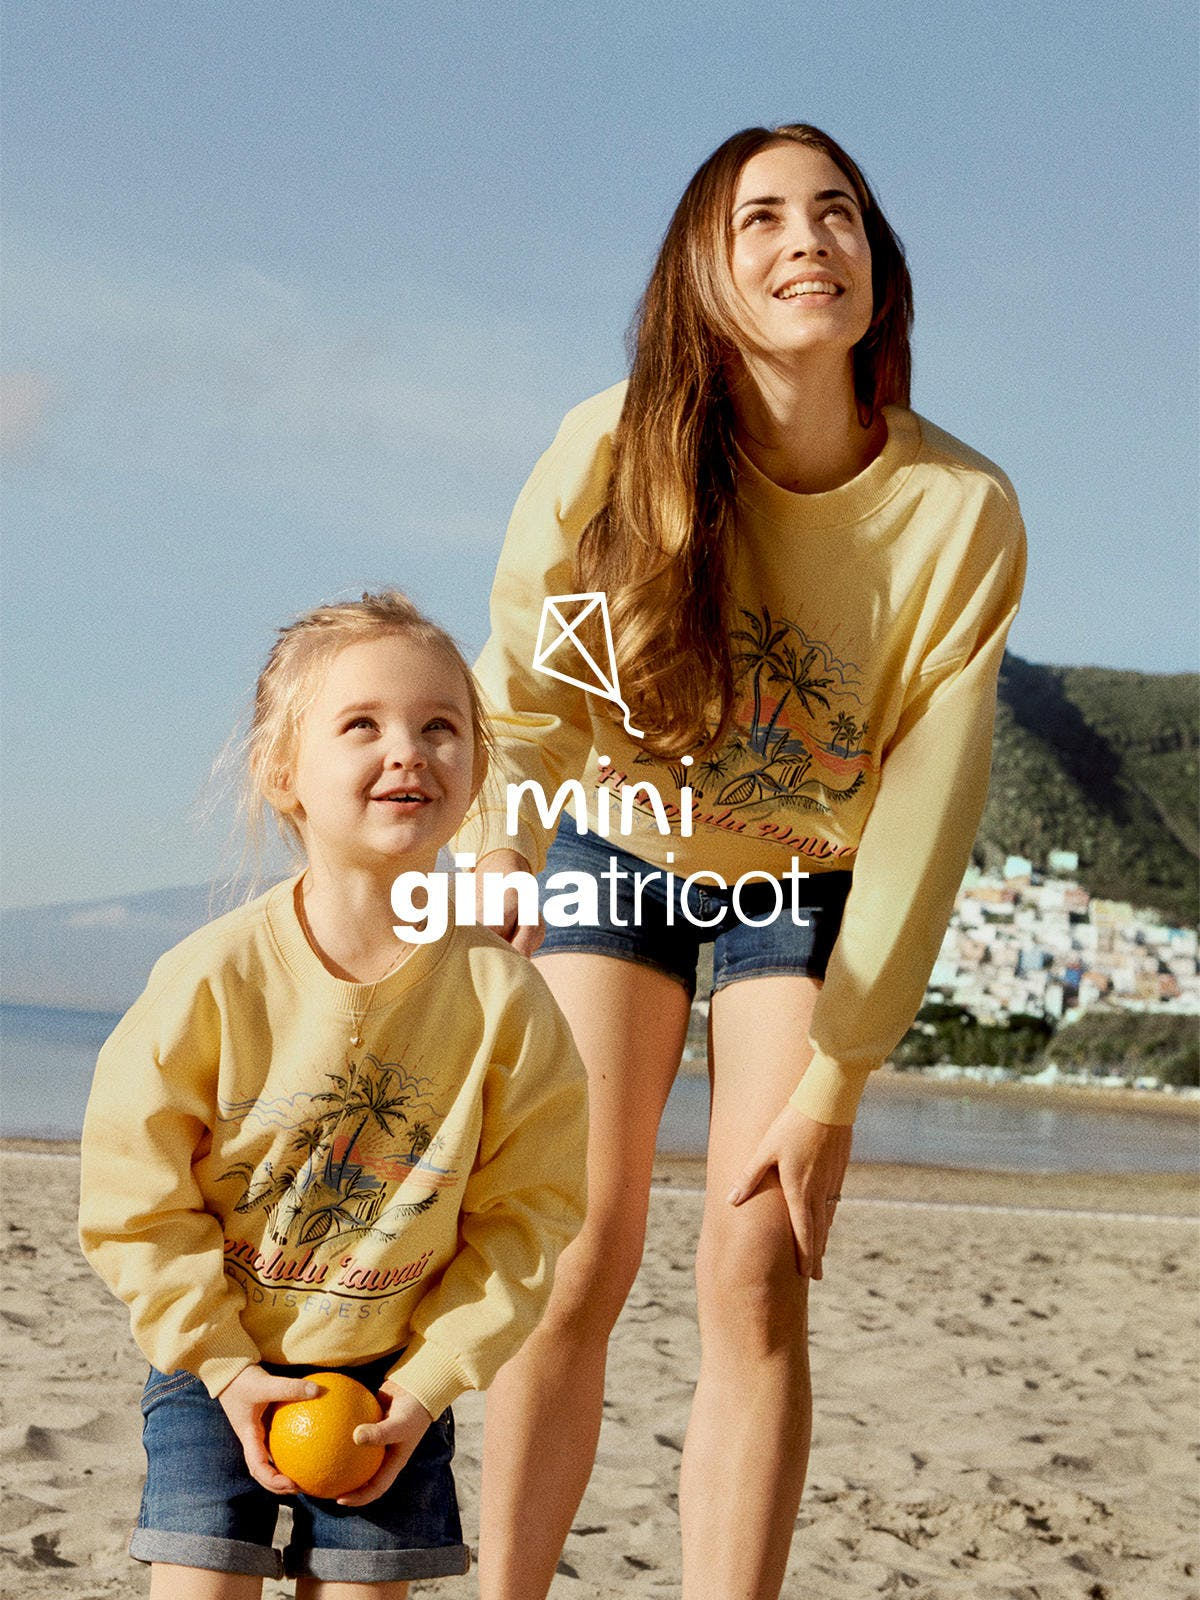 9248b3d8ec45 Gina Tricot - Clothing and fashion in stores and online - Gina Tricot